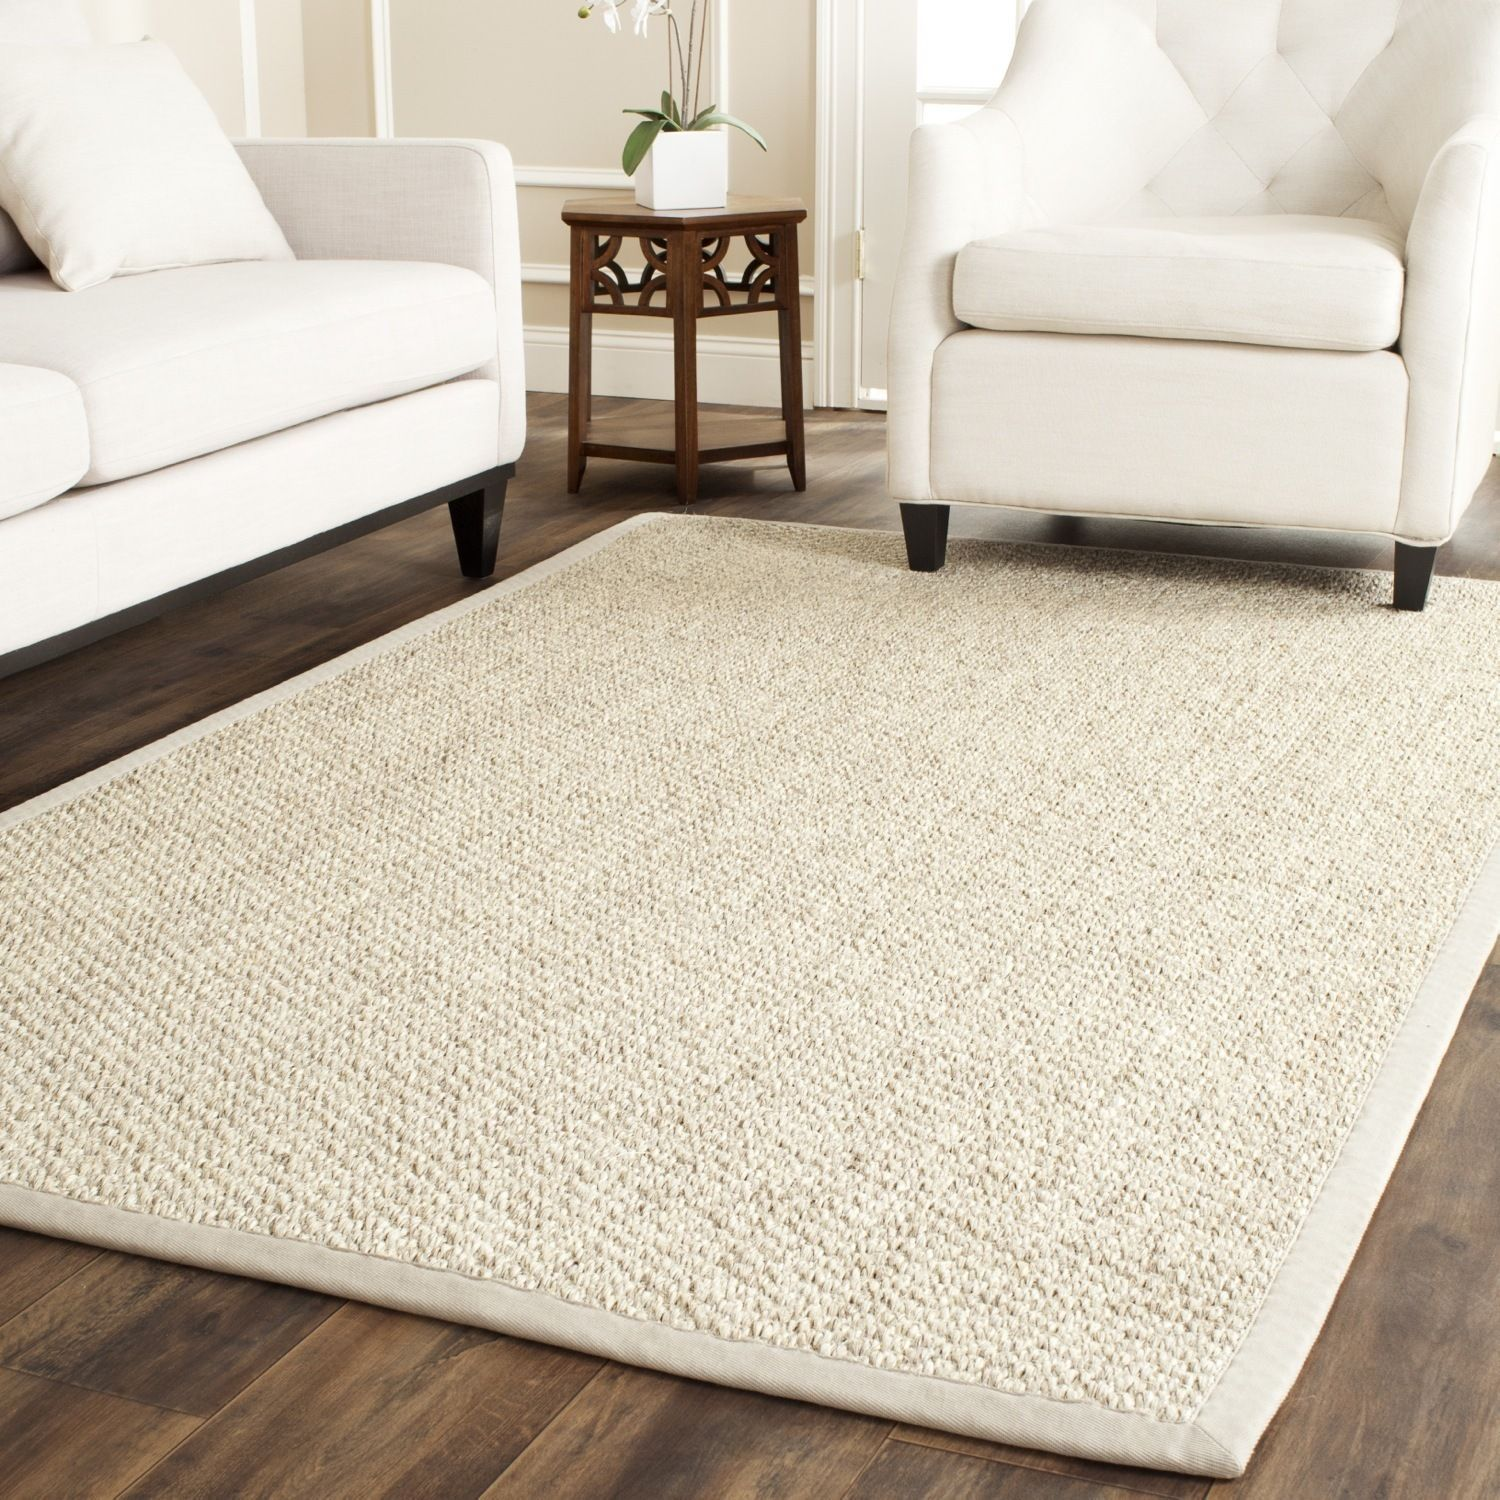 Safavieh Chunky Basketweave Marble Ivory Taupe Sisal Rug Overstock Com Shopping The Best Deals On 7x9 10x14 Sisal Area Rugs Sisal Rug Braided Area Rugs